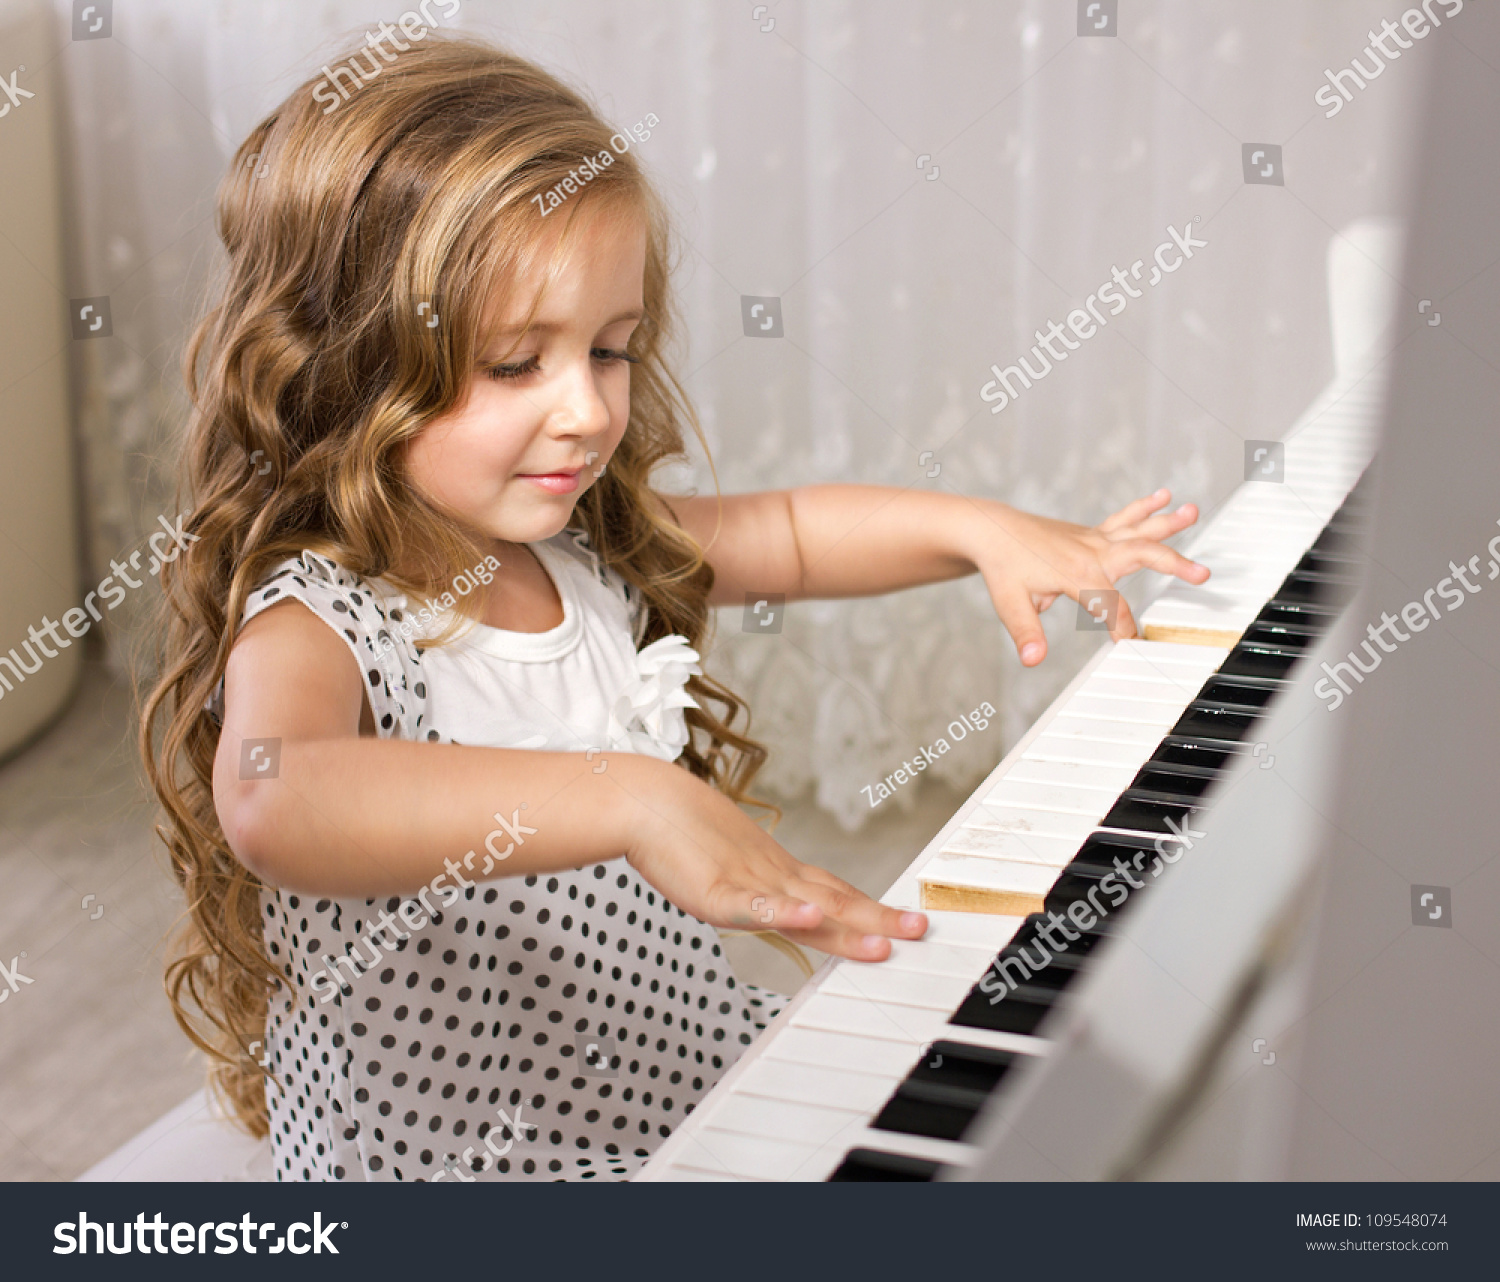 Interesting. little girl nude playing piano apologise, but